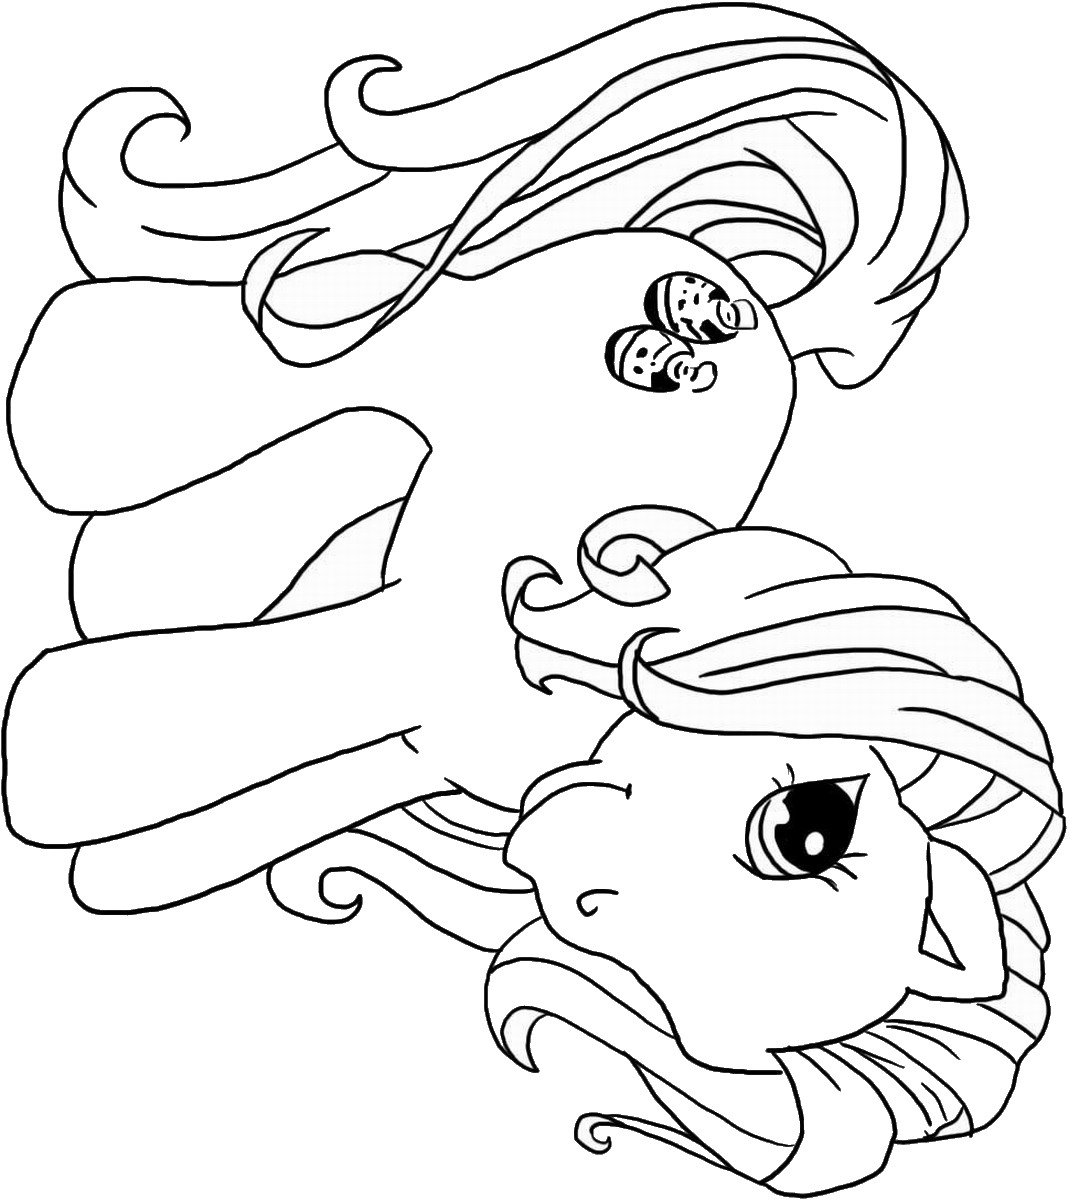 pony coloring pages printable my little pony coloring pages print and colorcom pages coloring printable pony 1 1